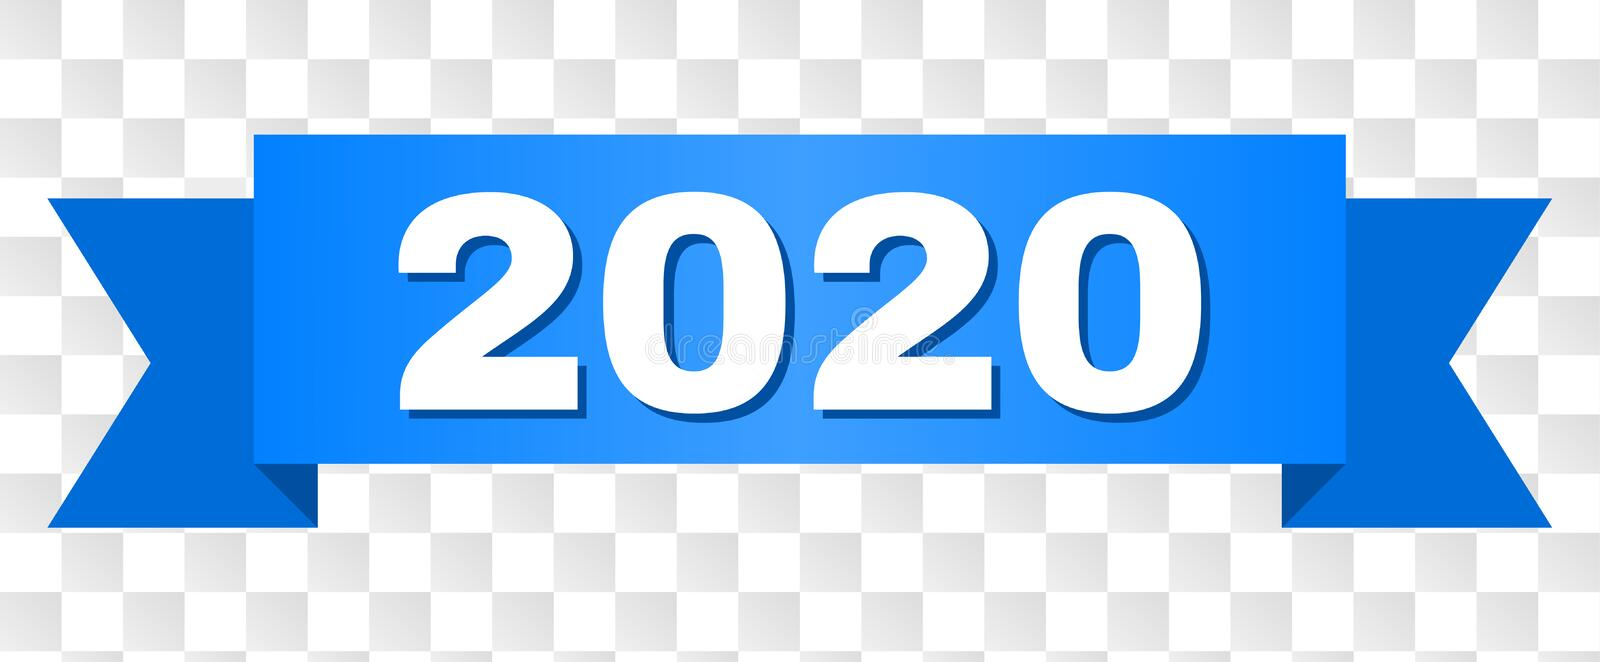 Blue Tape with 2020 Title. 2020 text on a ribbon. Designed with white caption and blue tape. Vector banner with 2020 tag on a transparent background vector illustration